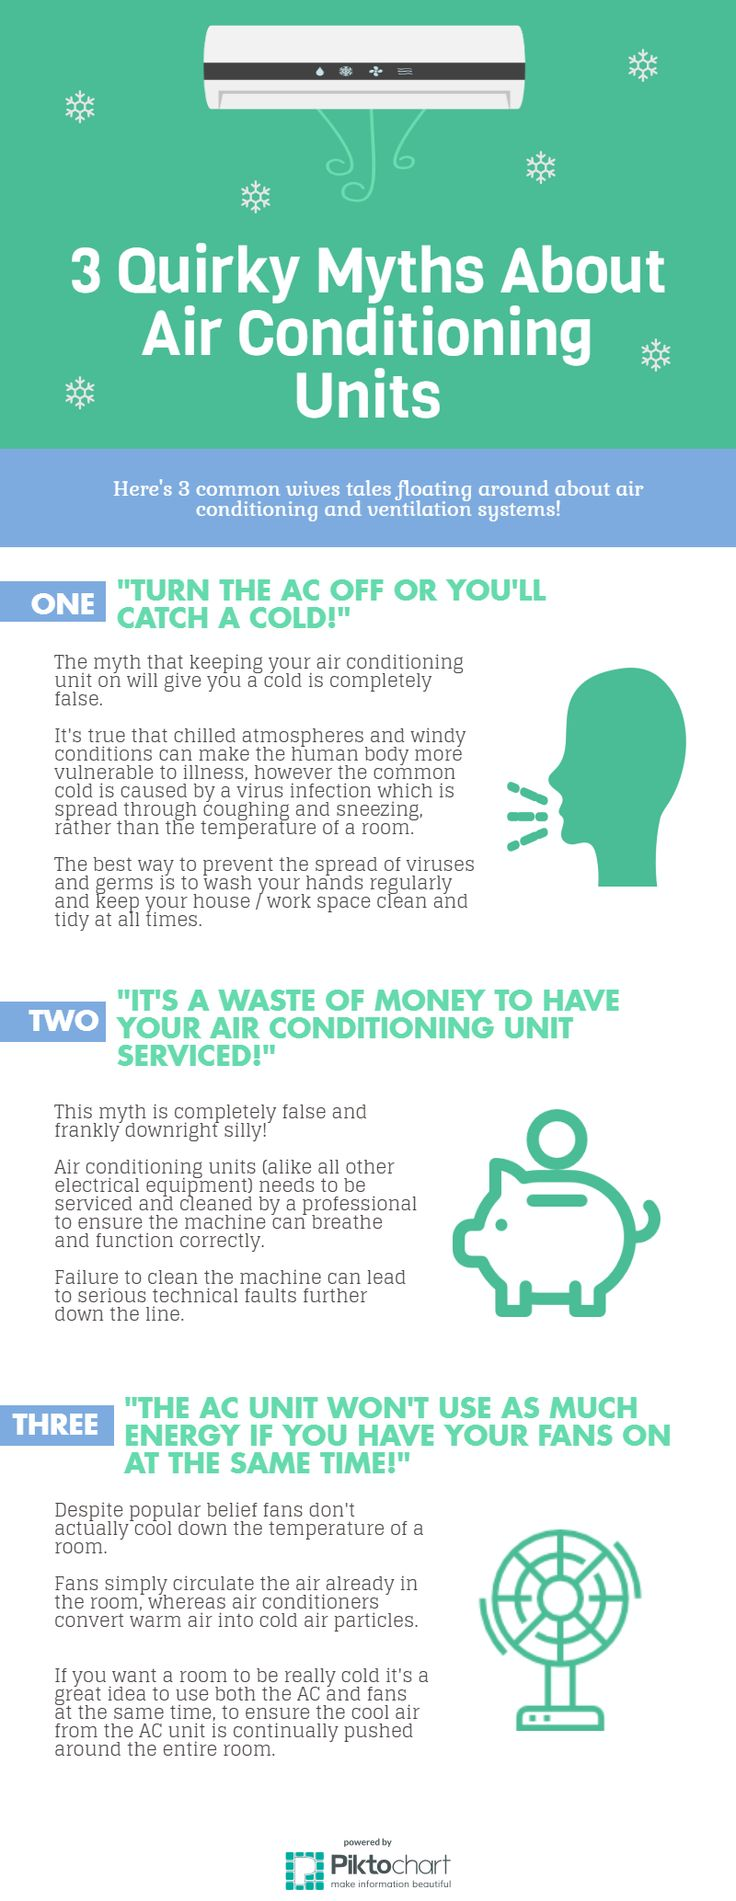 Learn more about the myths floating around about air conditioning units in this infographic!   You can view the original infographic here: https://magic.piktochart.com/output/22943588-3-myths-about-air-conditioning-units  Please visit our website for further information: http://www.aircontrol.co.uk/  Contact us: Air Control & Development Ltd Unit 5 ABS Business Park Northgate Aldridge Walsall WS9 8TH  Contact number: 0845 607 6841